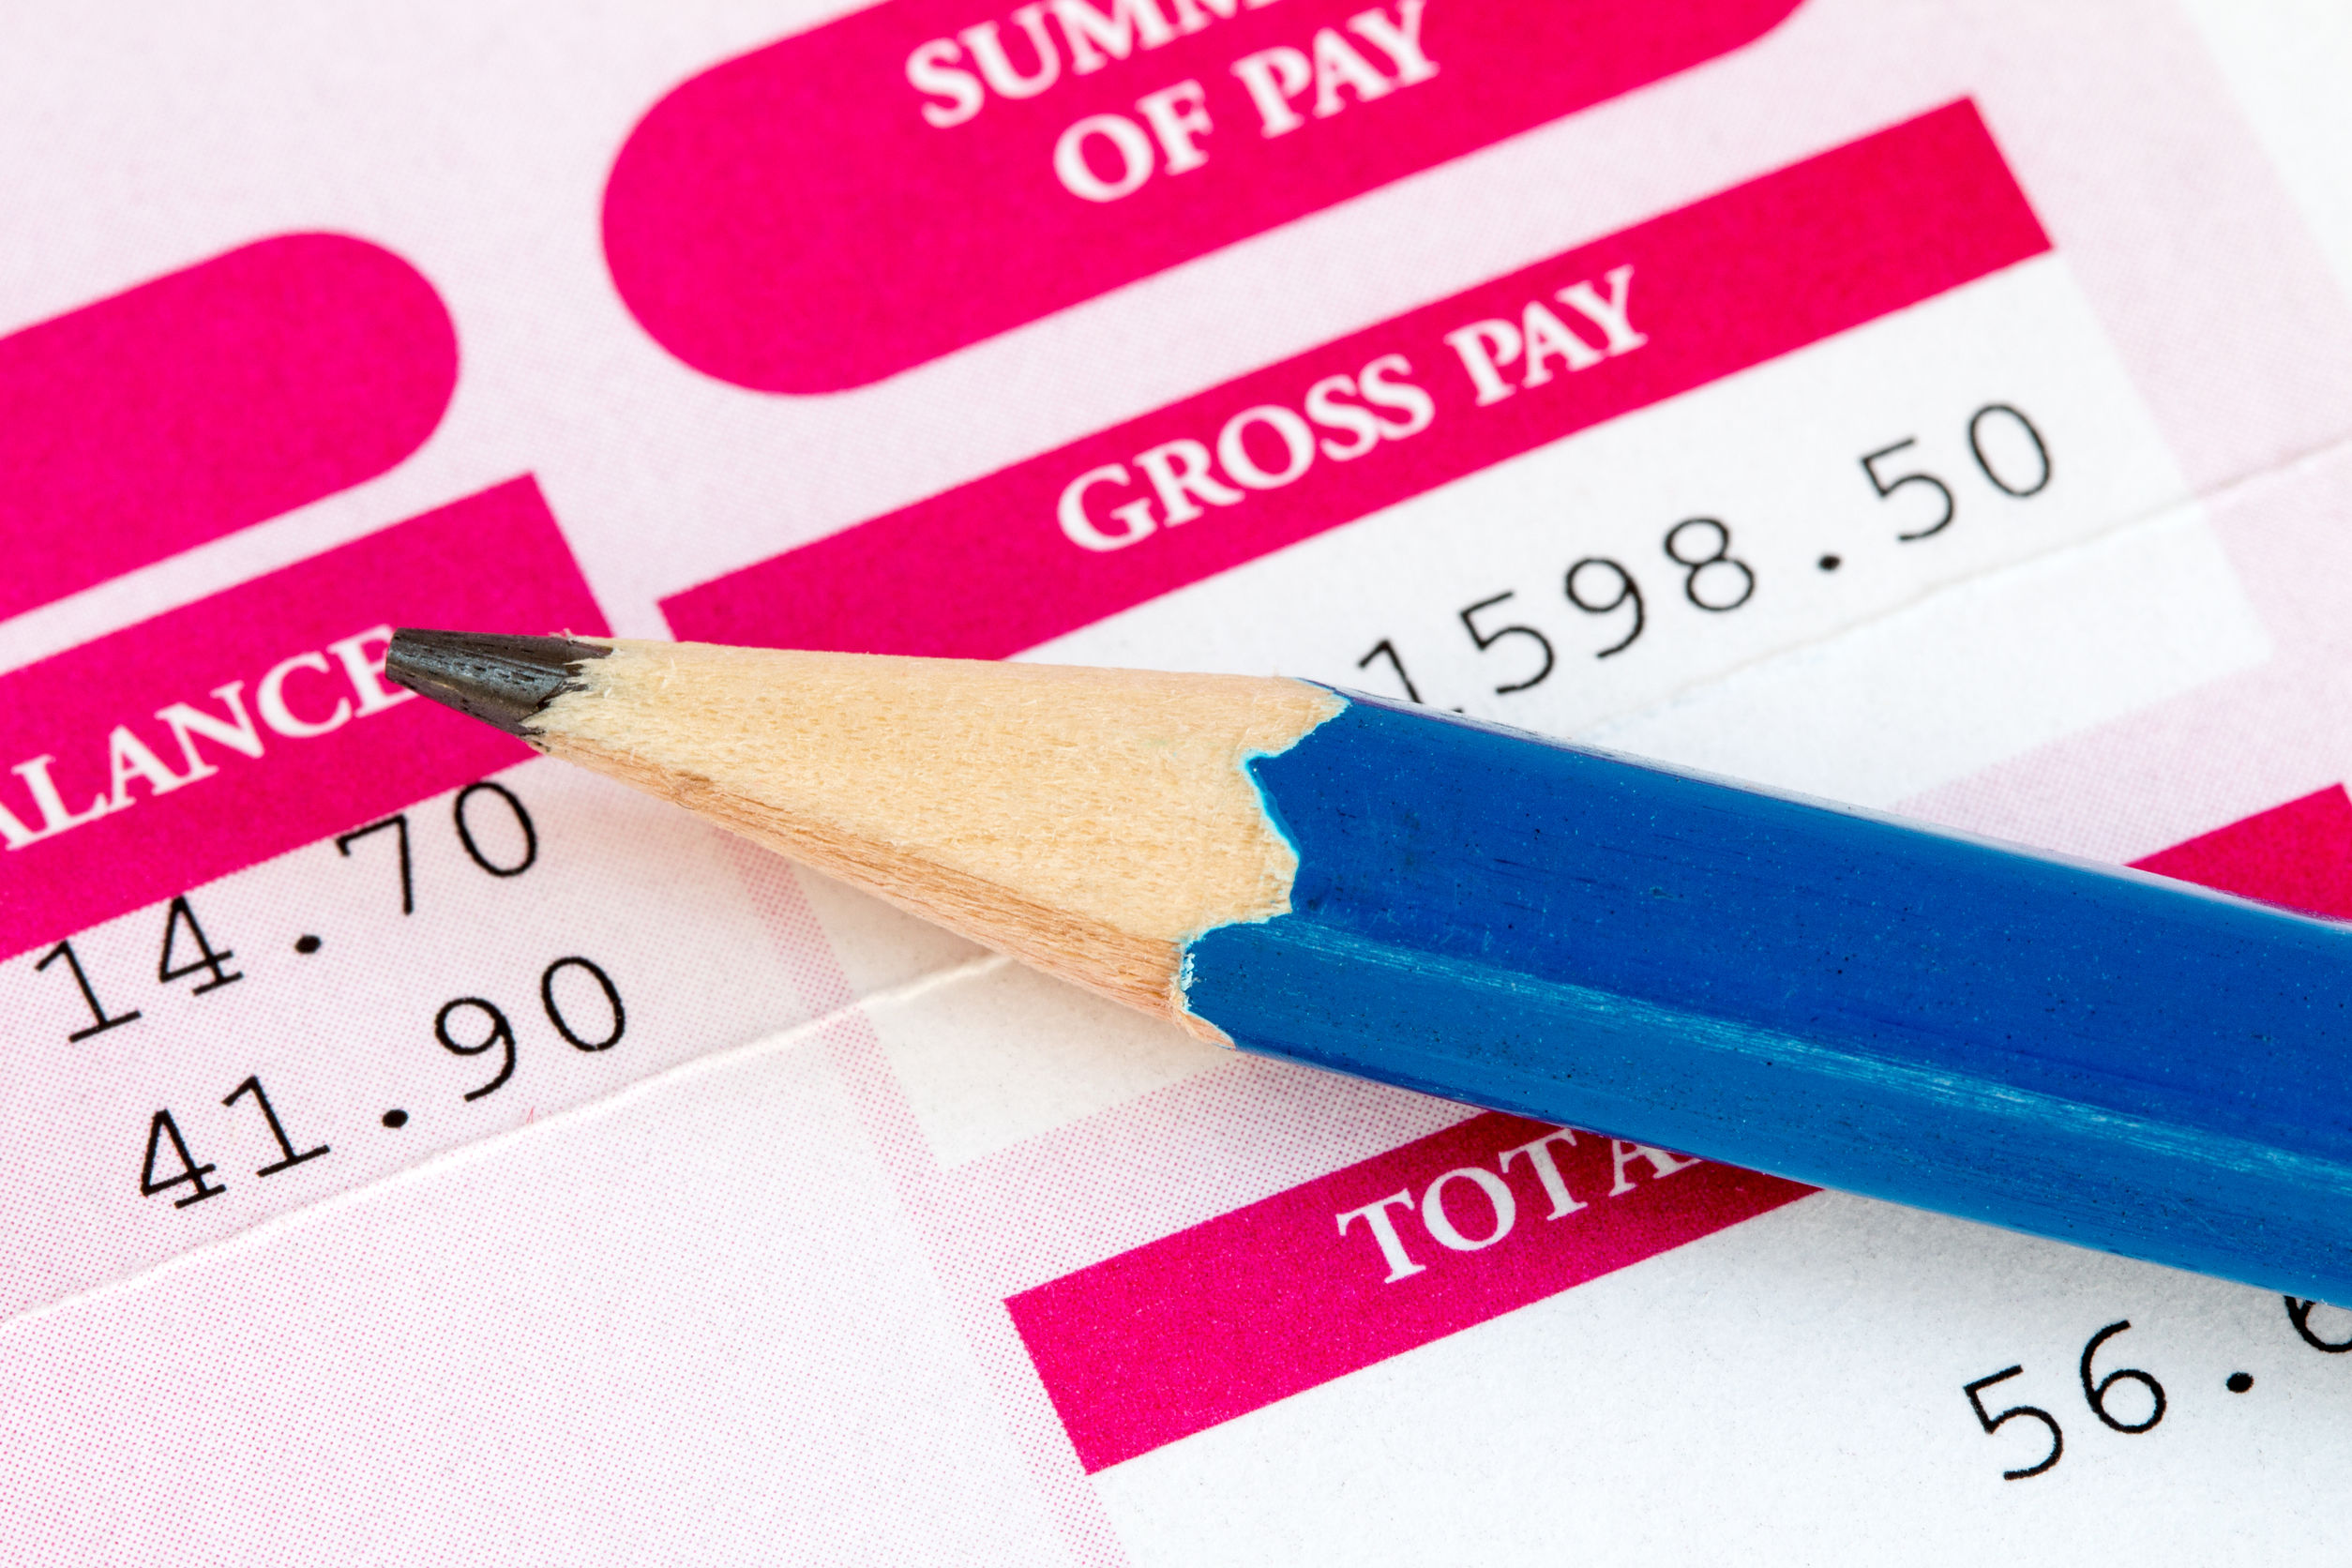 Junior pay rates in modern awards: Are young people being ripped off?